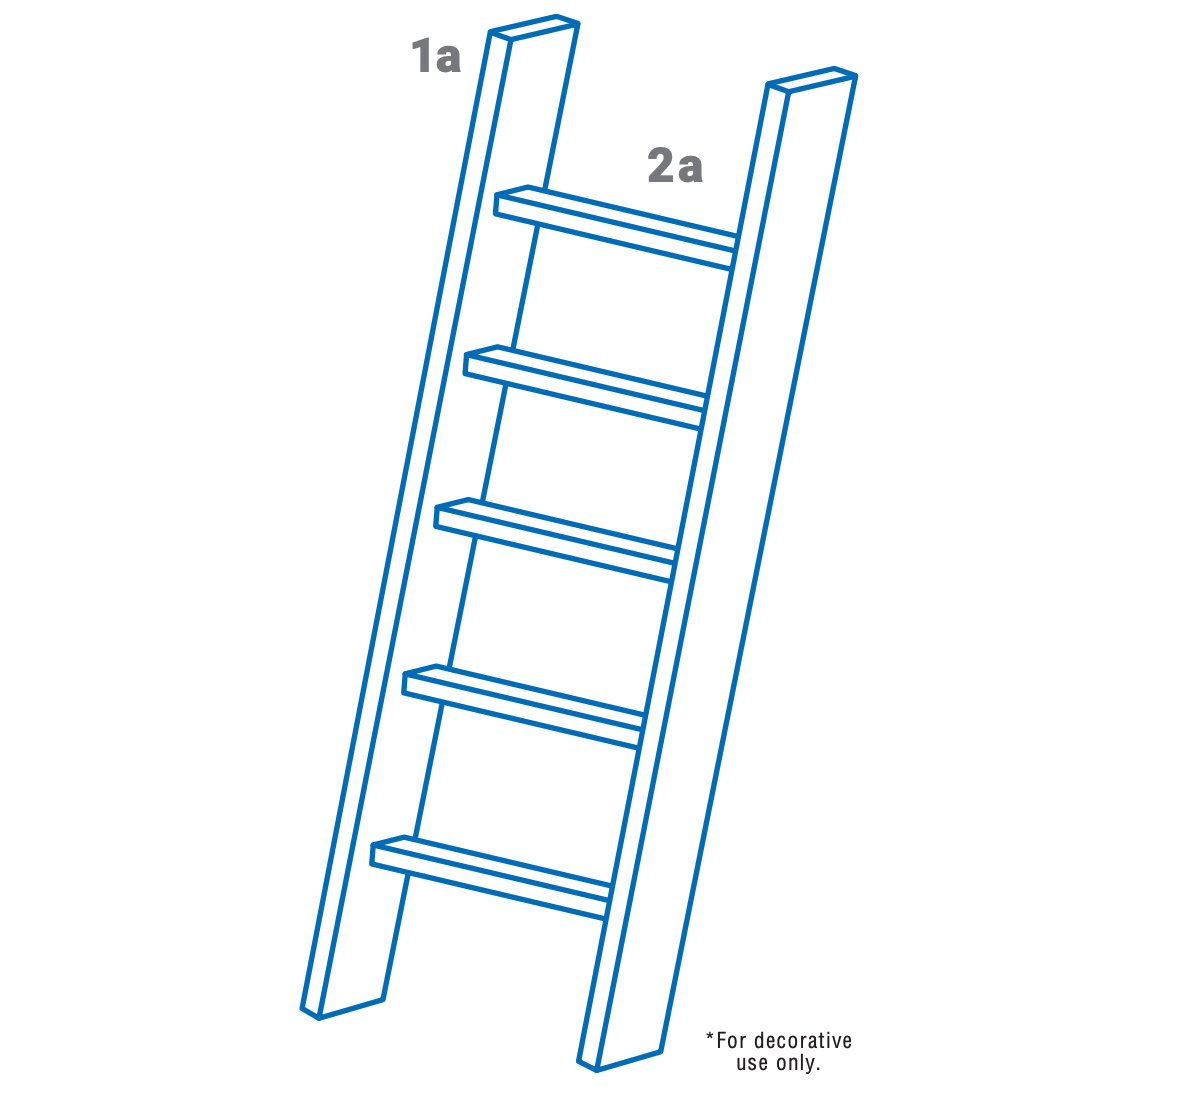 Picture Frame Shelf - DIY Project Instructions - Harbor Freight Tools